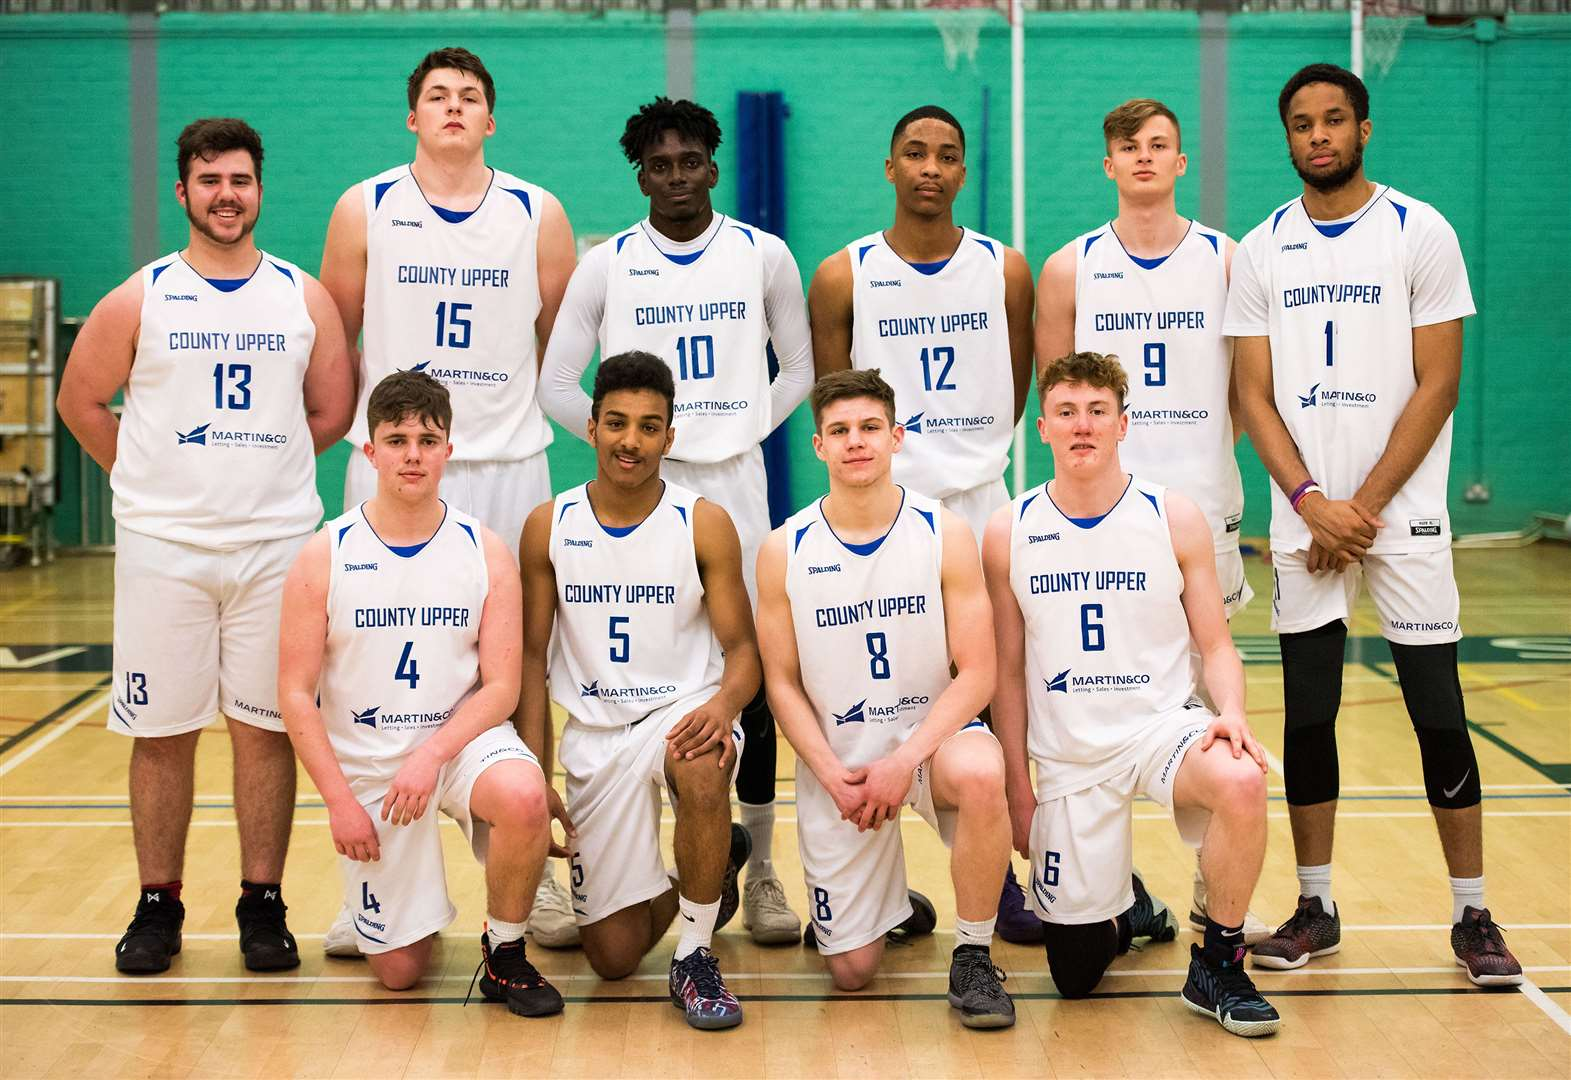 Bury St Edmunds teams to go head to head in the NBL